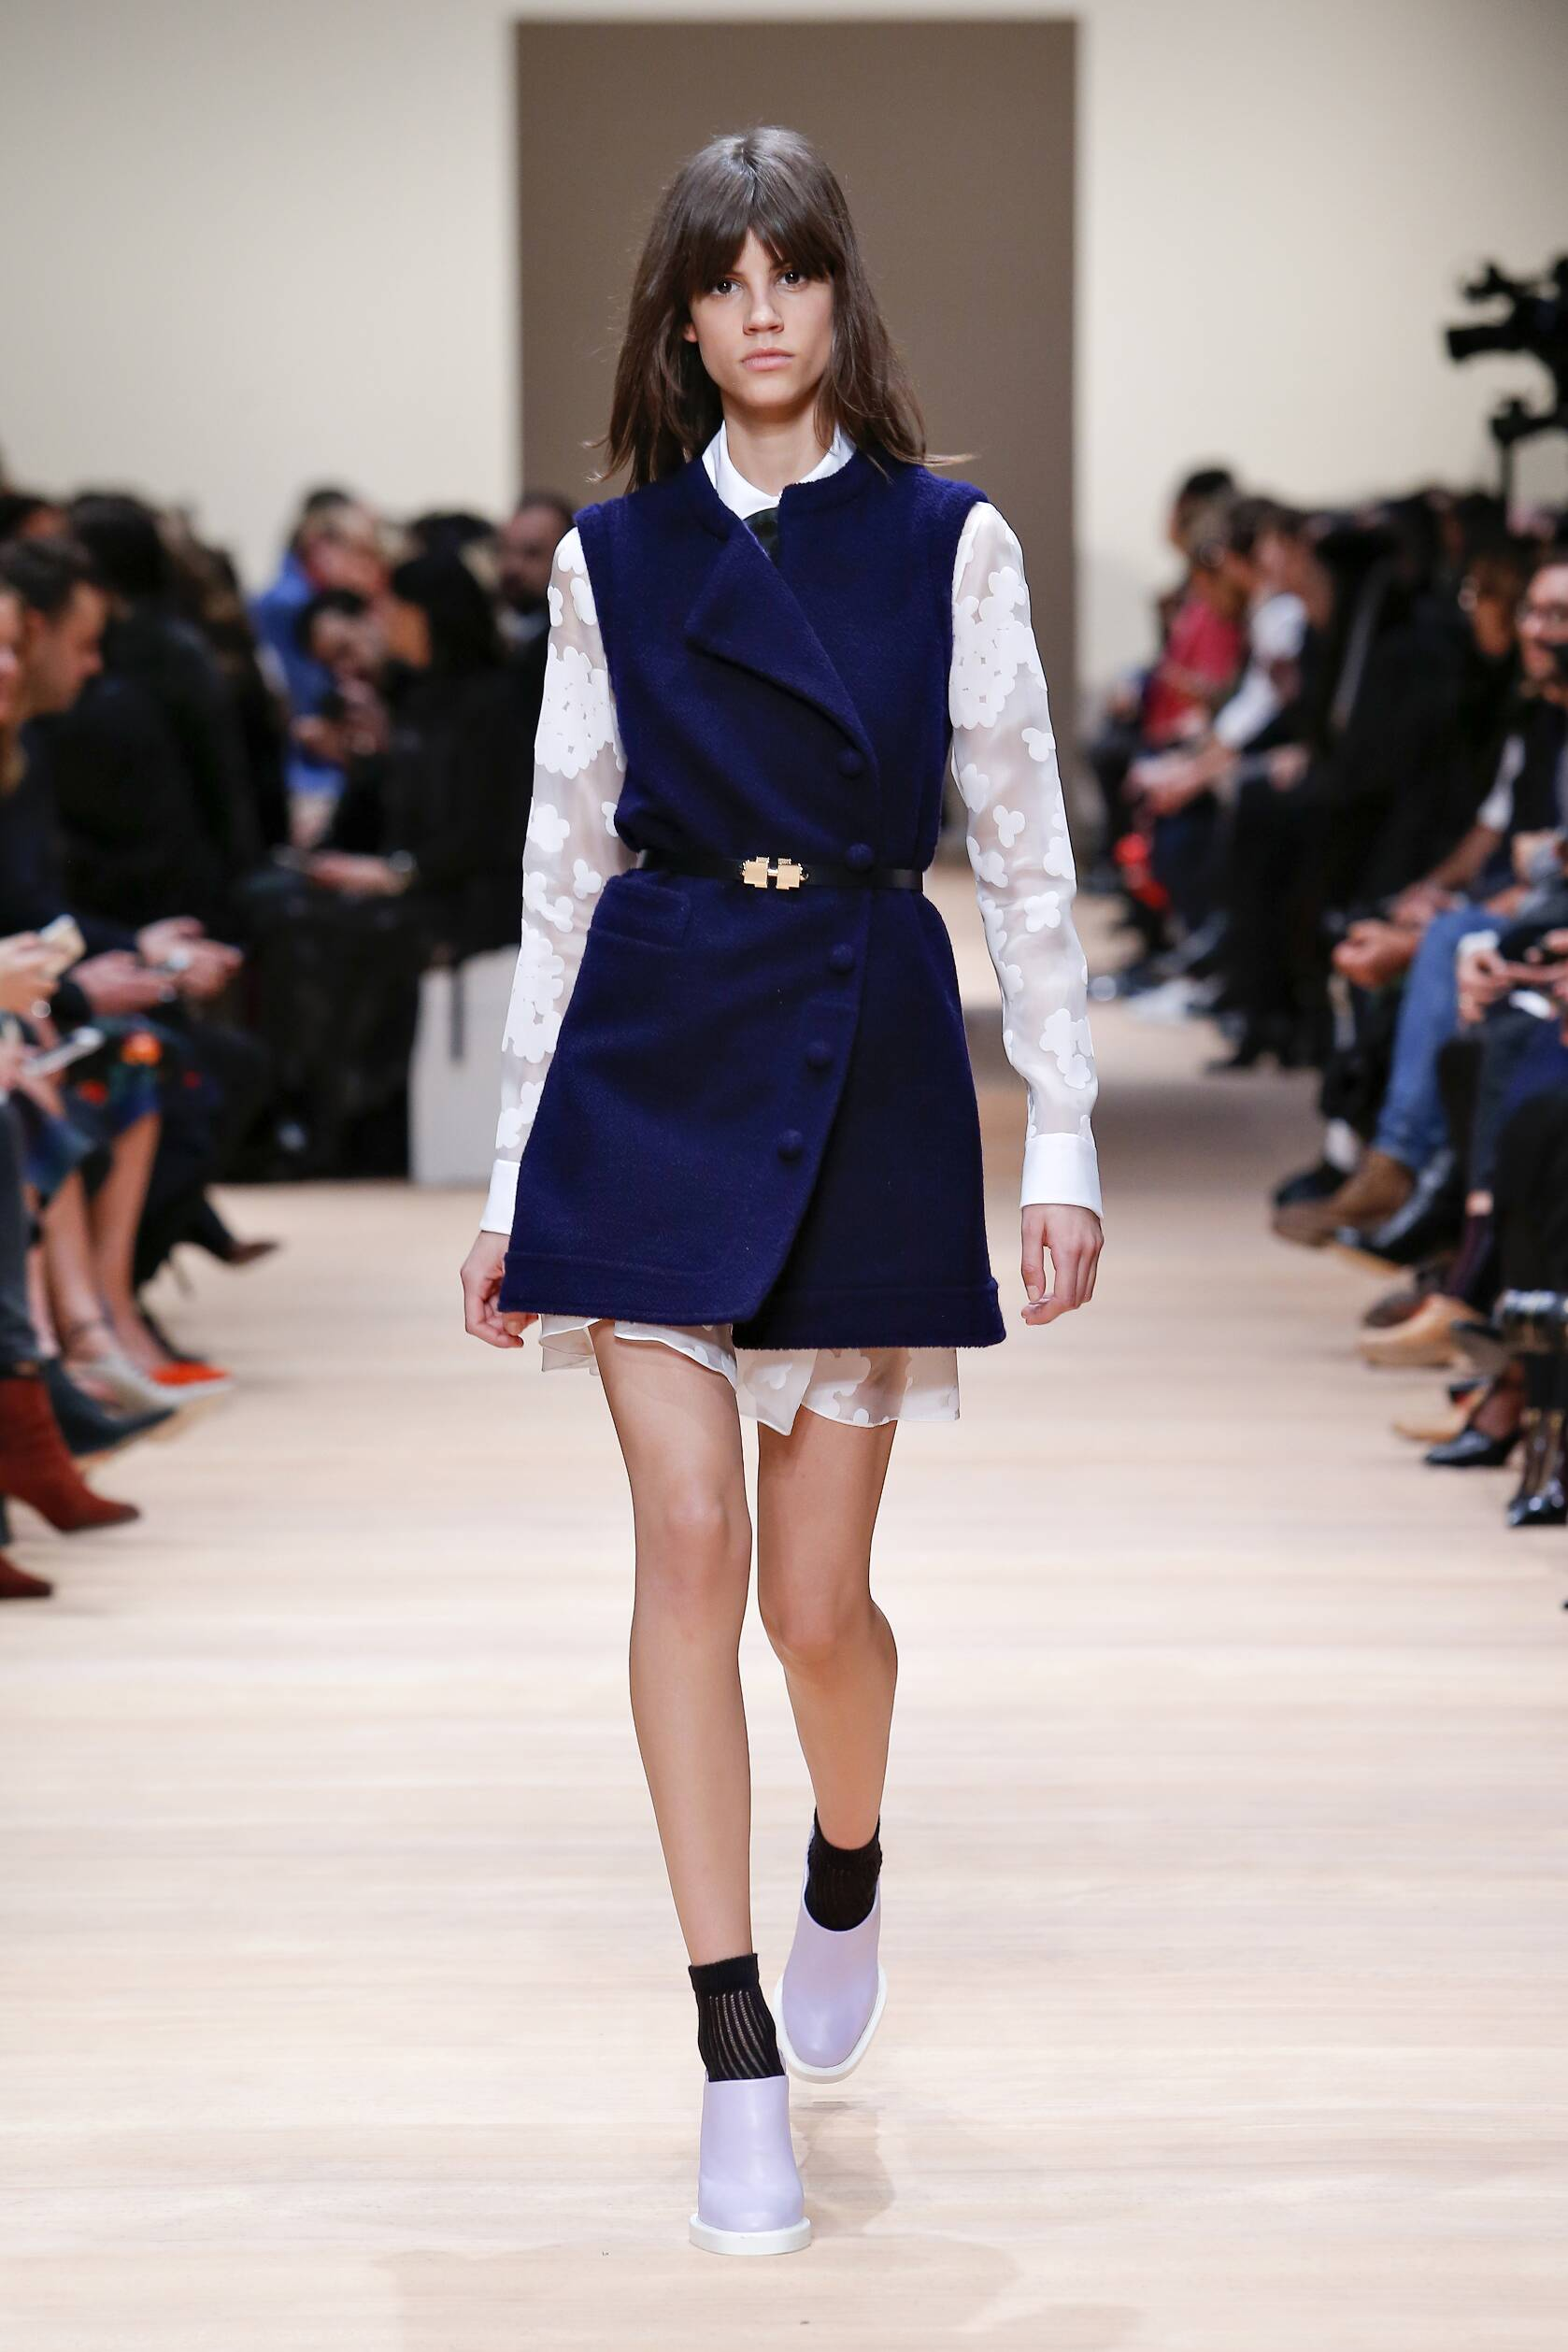 Winter 2015 Fashion Show Carven Collection